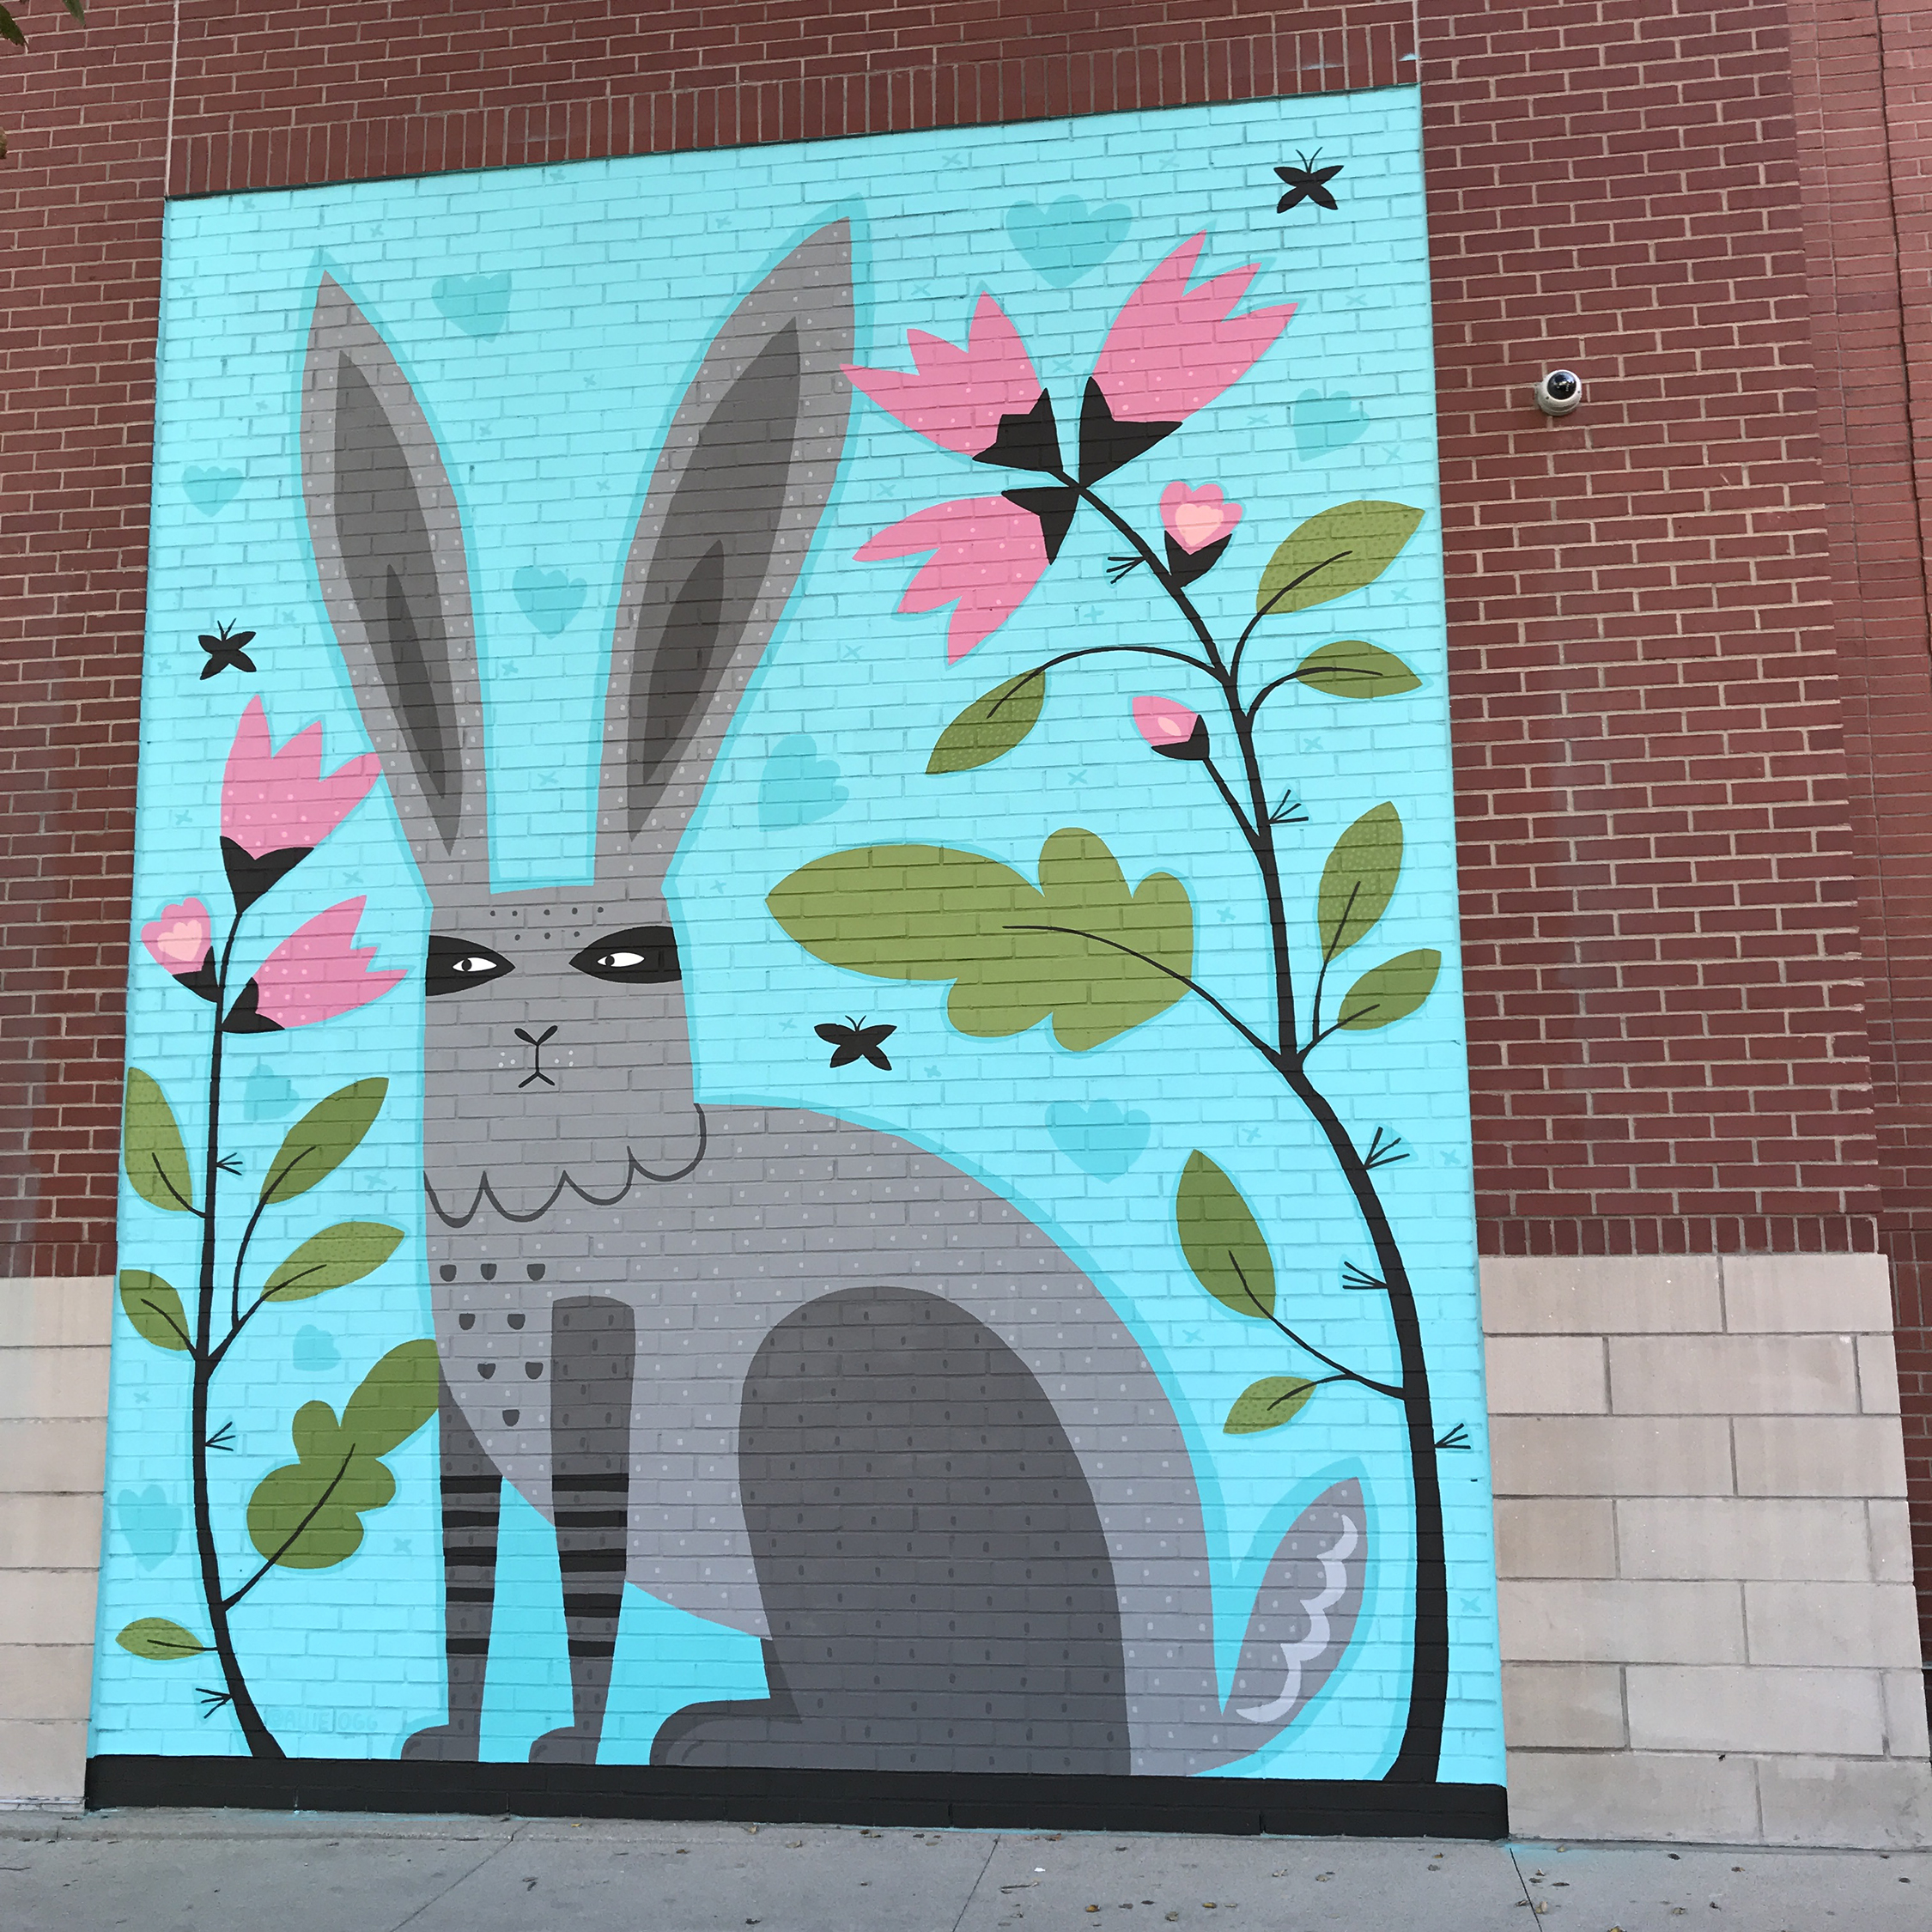 Mural on Uncommon Apartments in Fort Collins